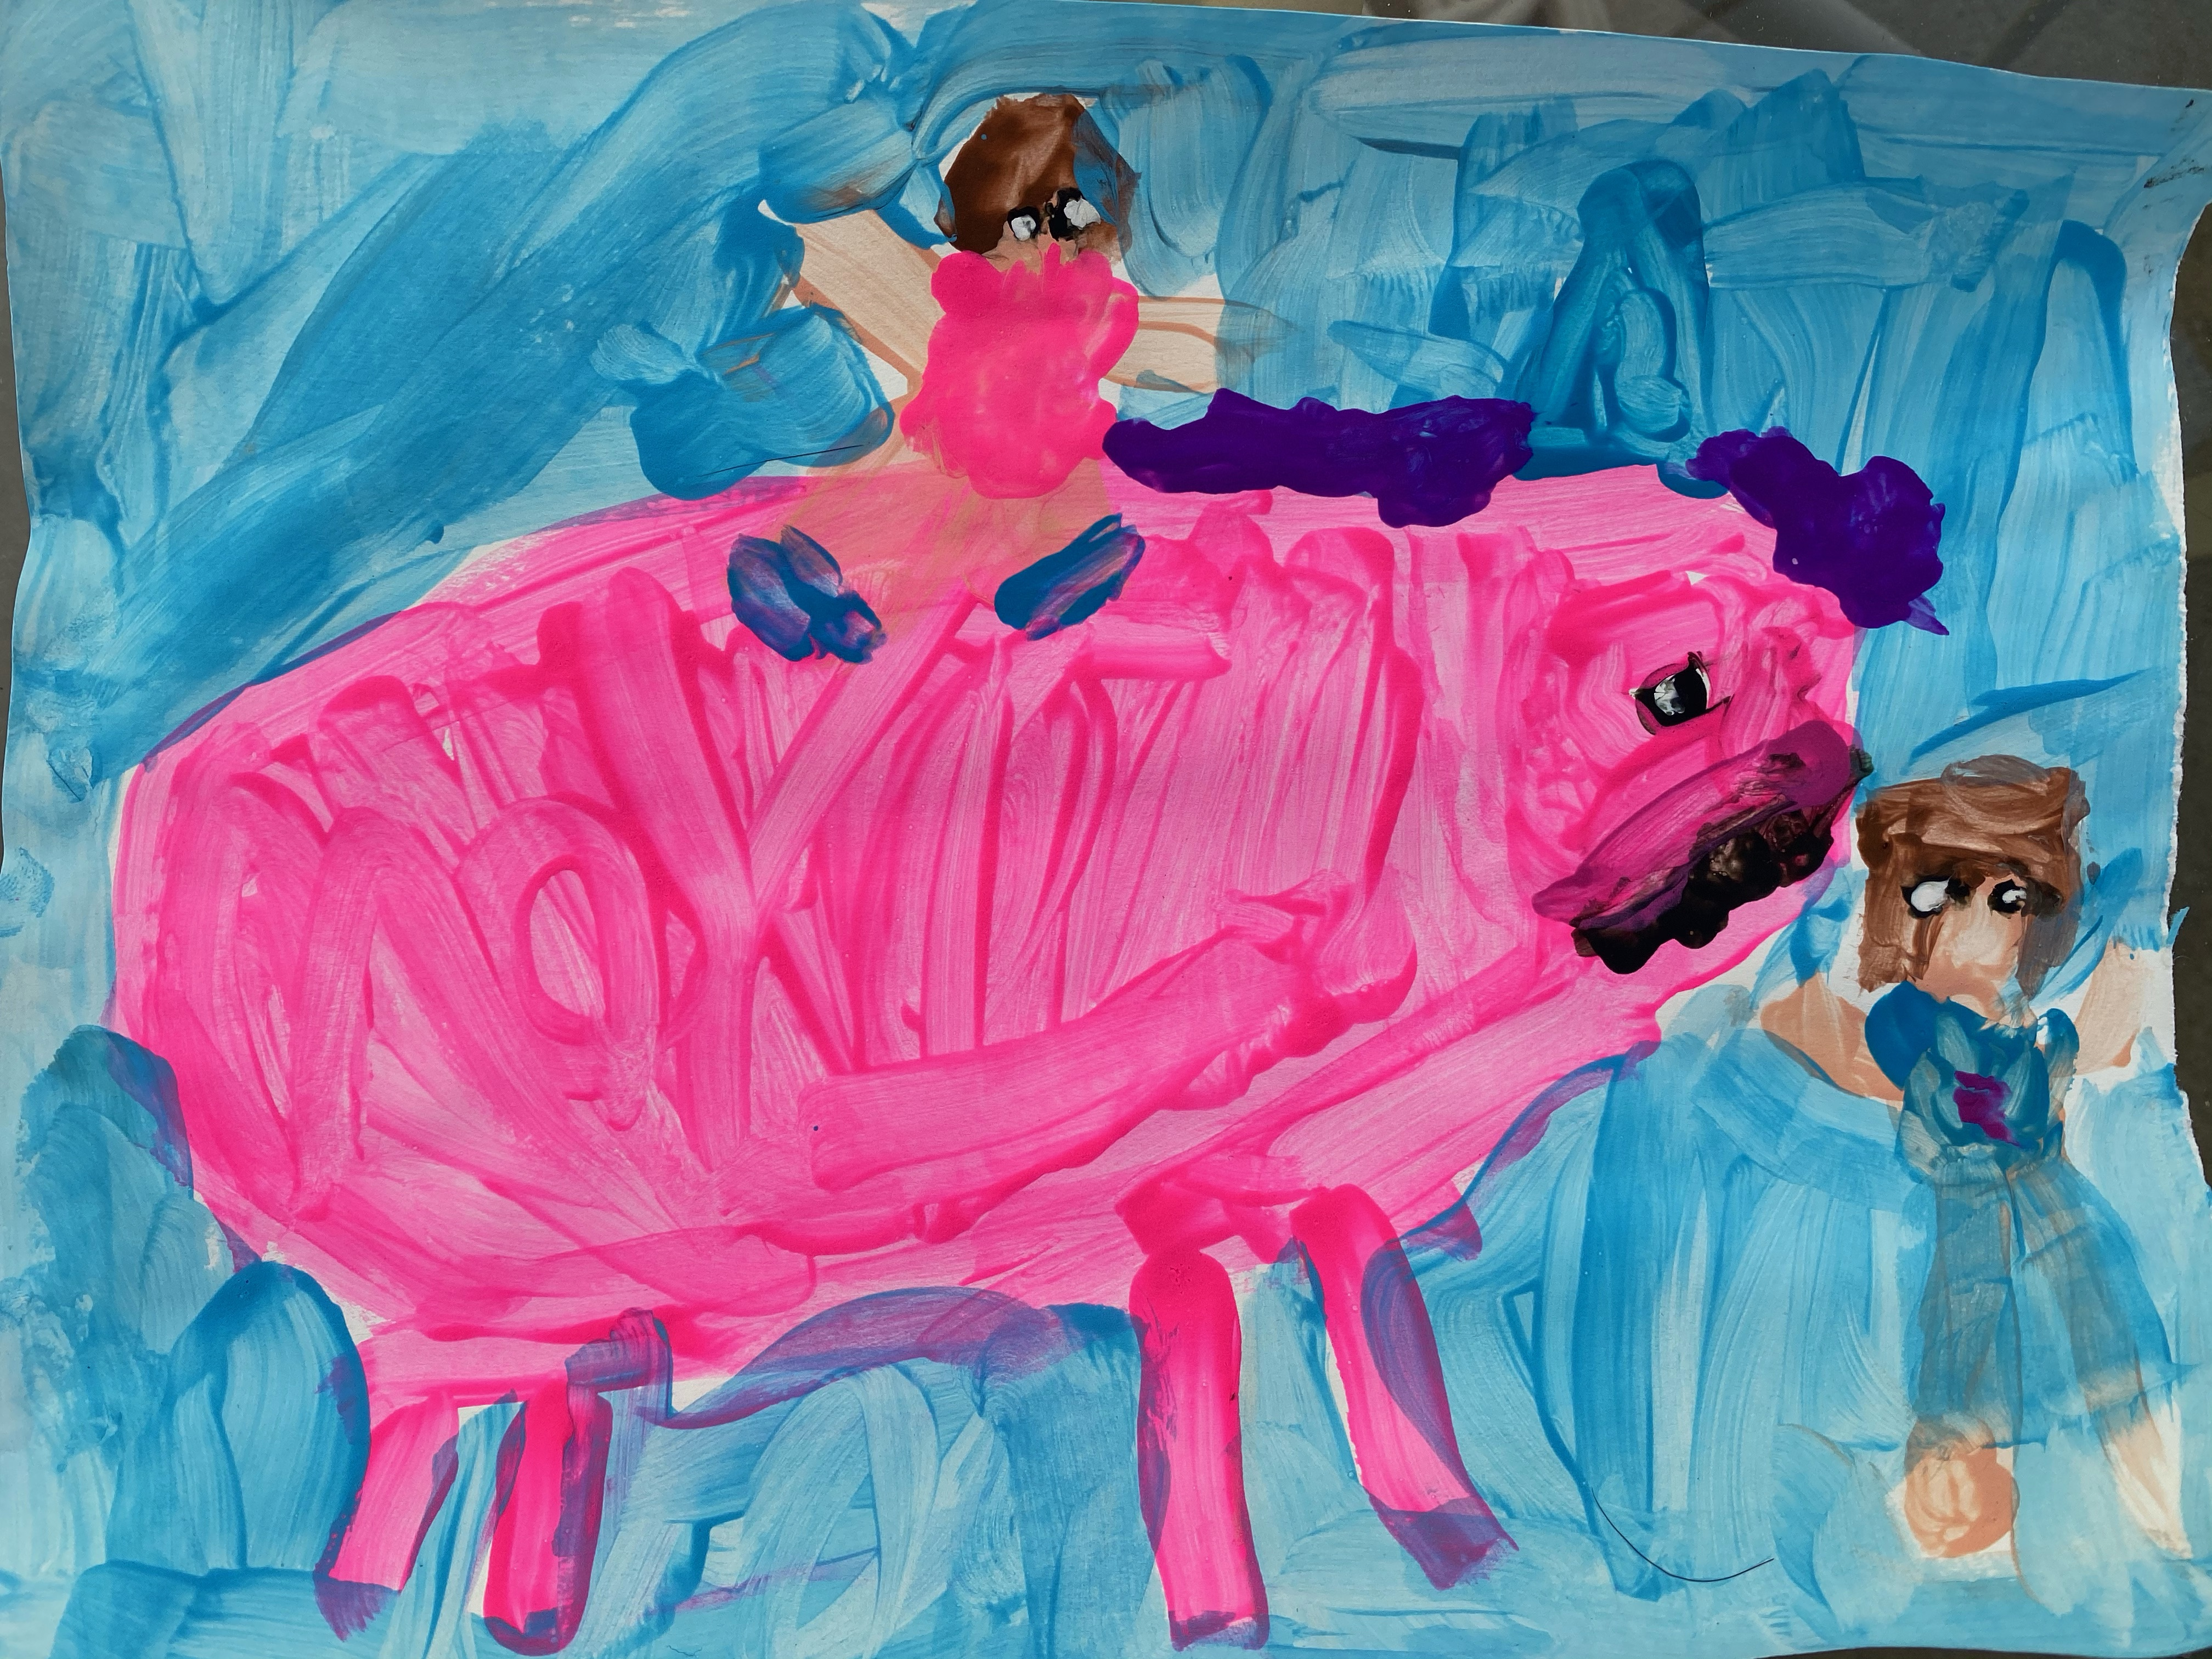 Daddy and I with Unicorn by Mikayla Kost